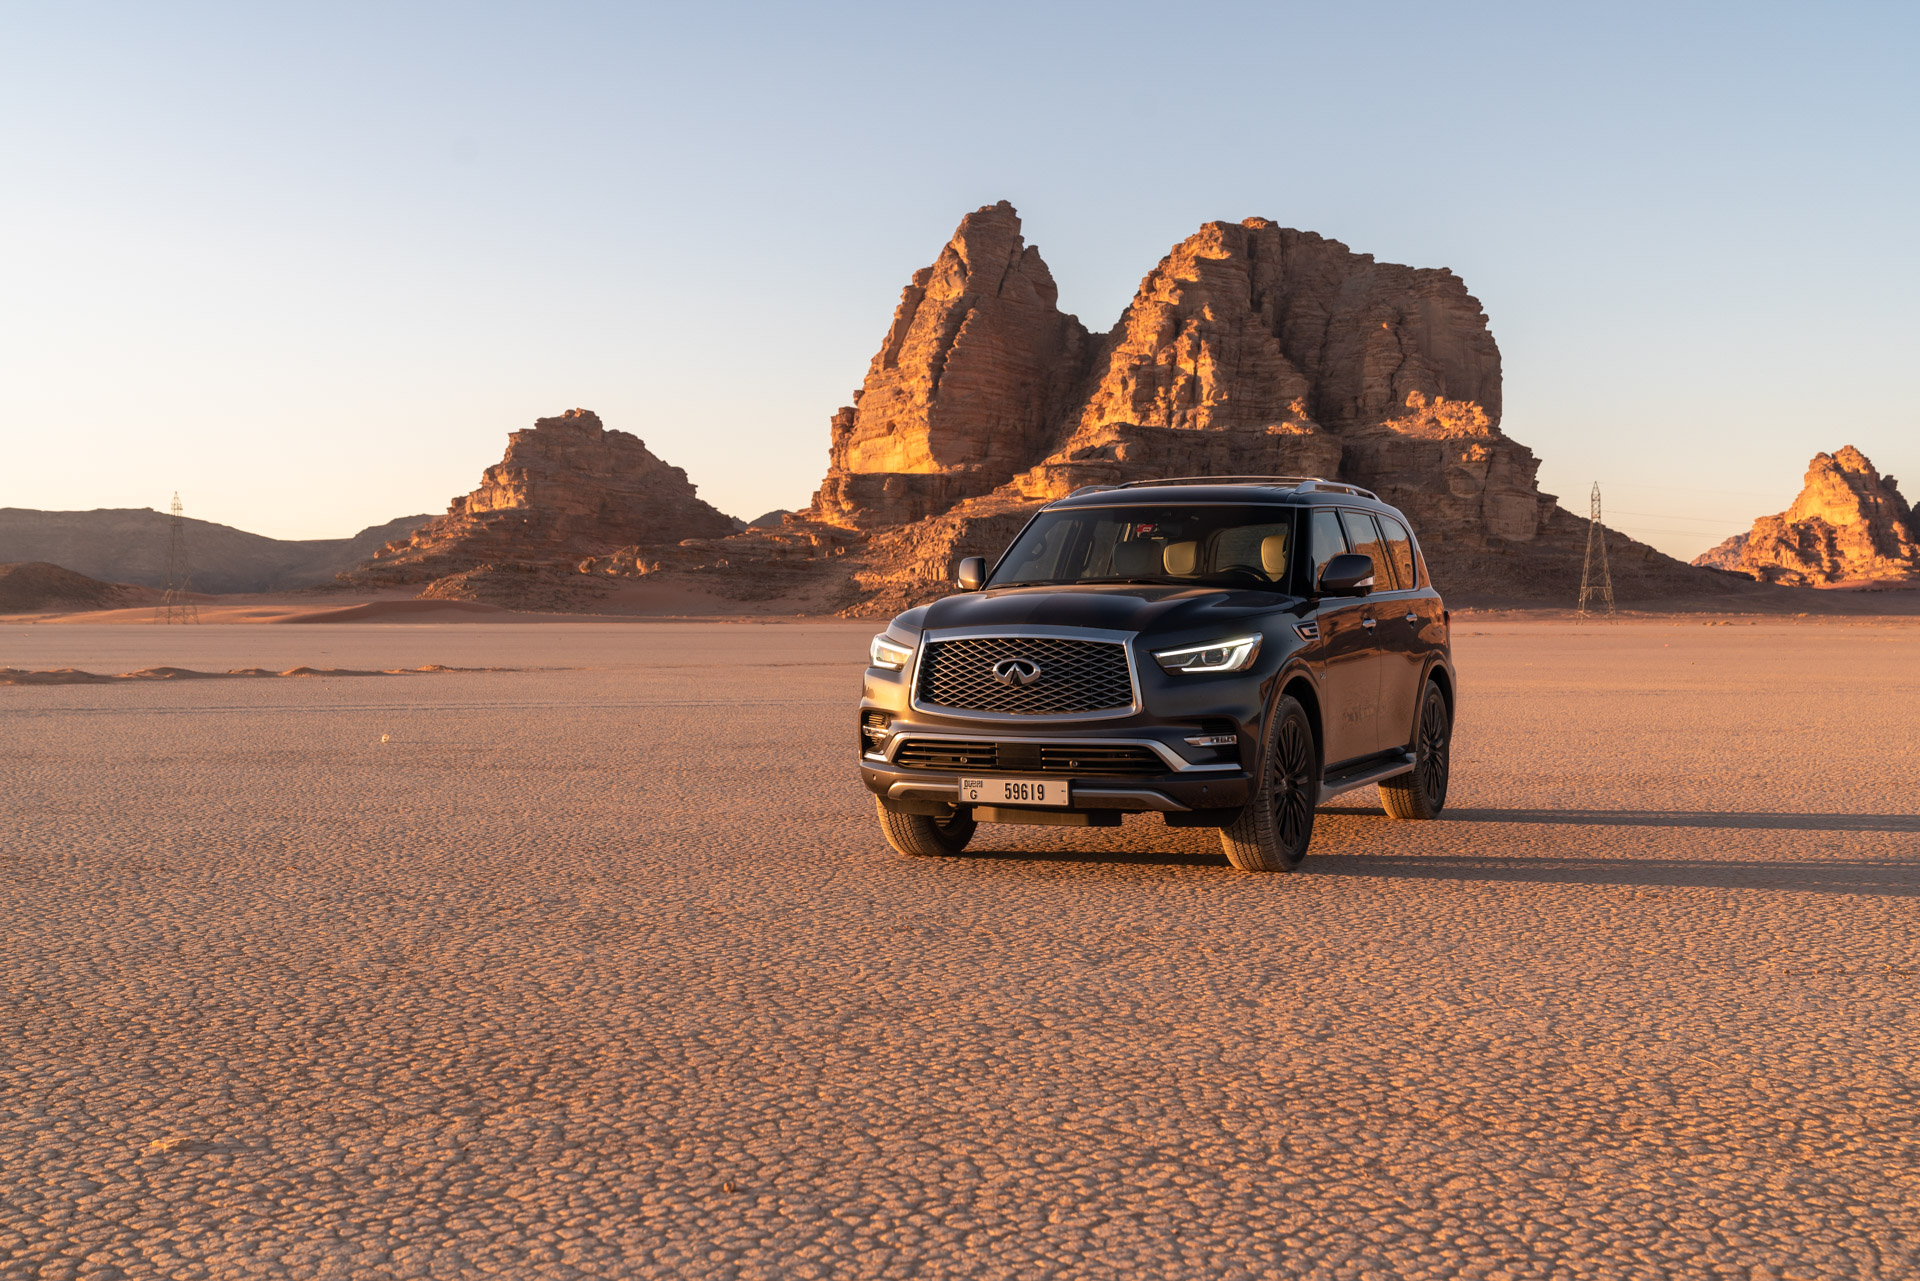 Infiniti Marks 30 Years with Petra Expedition